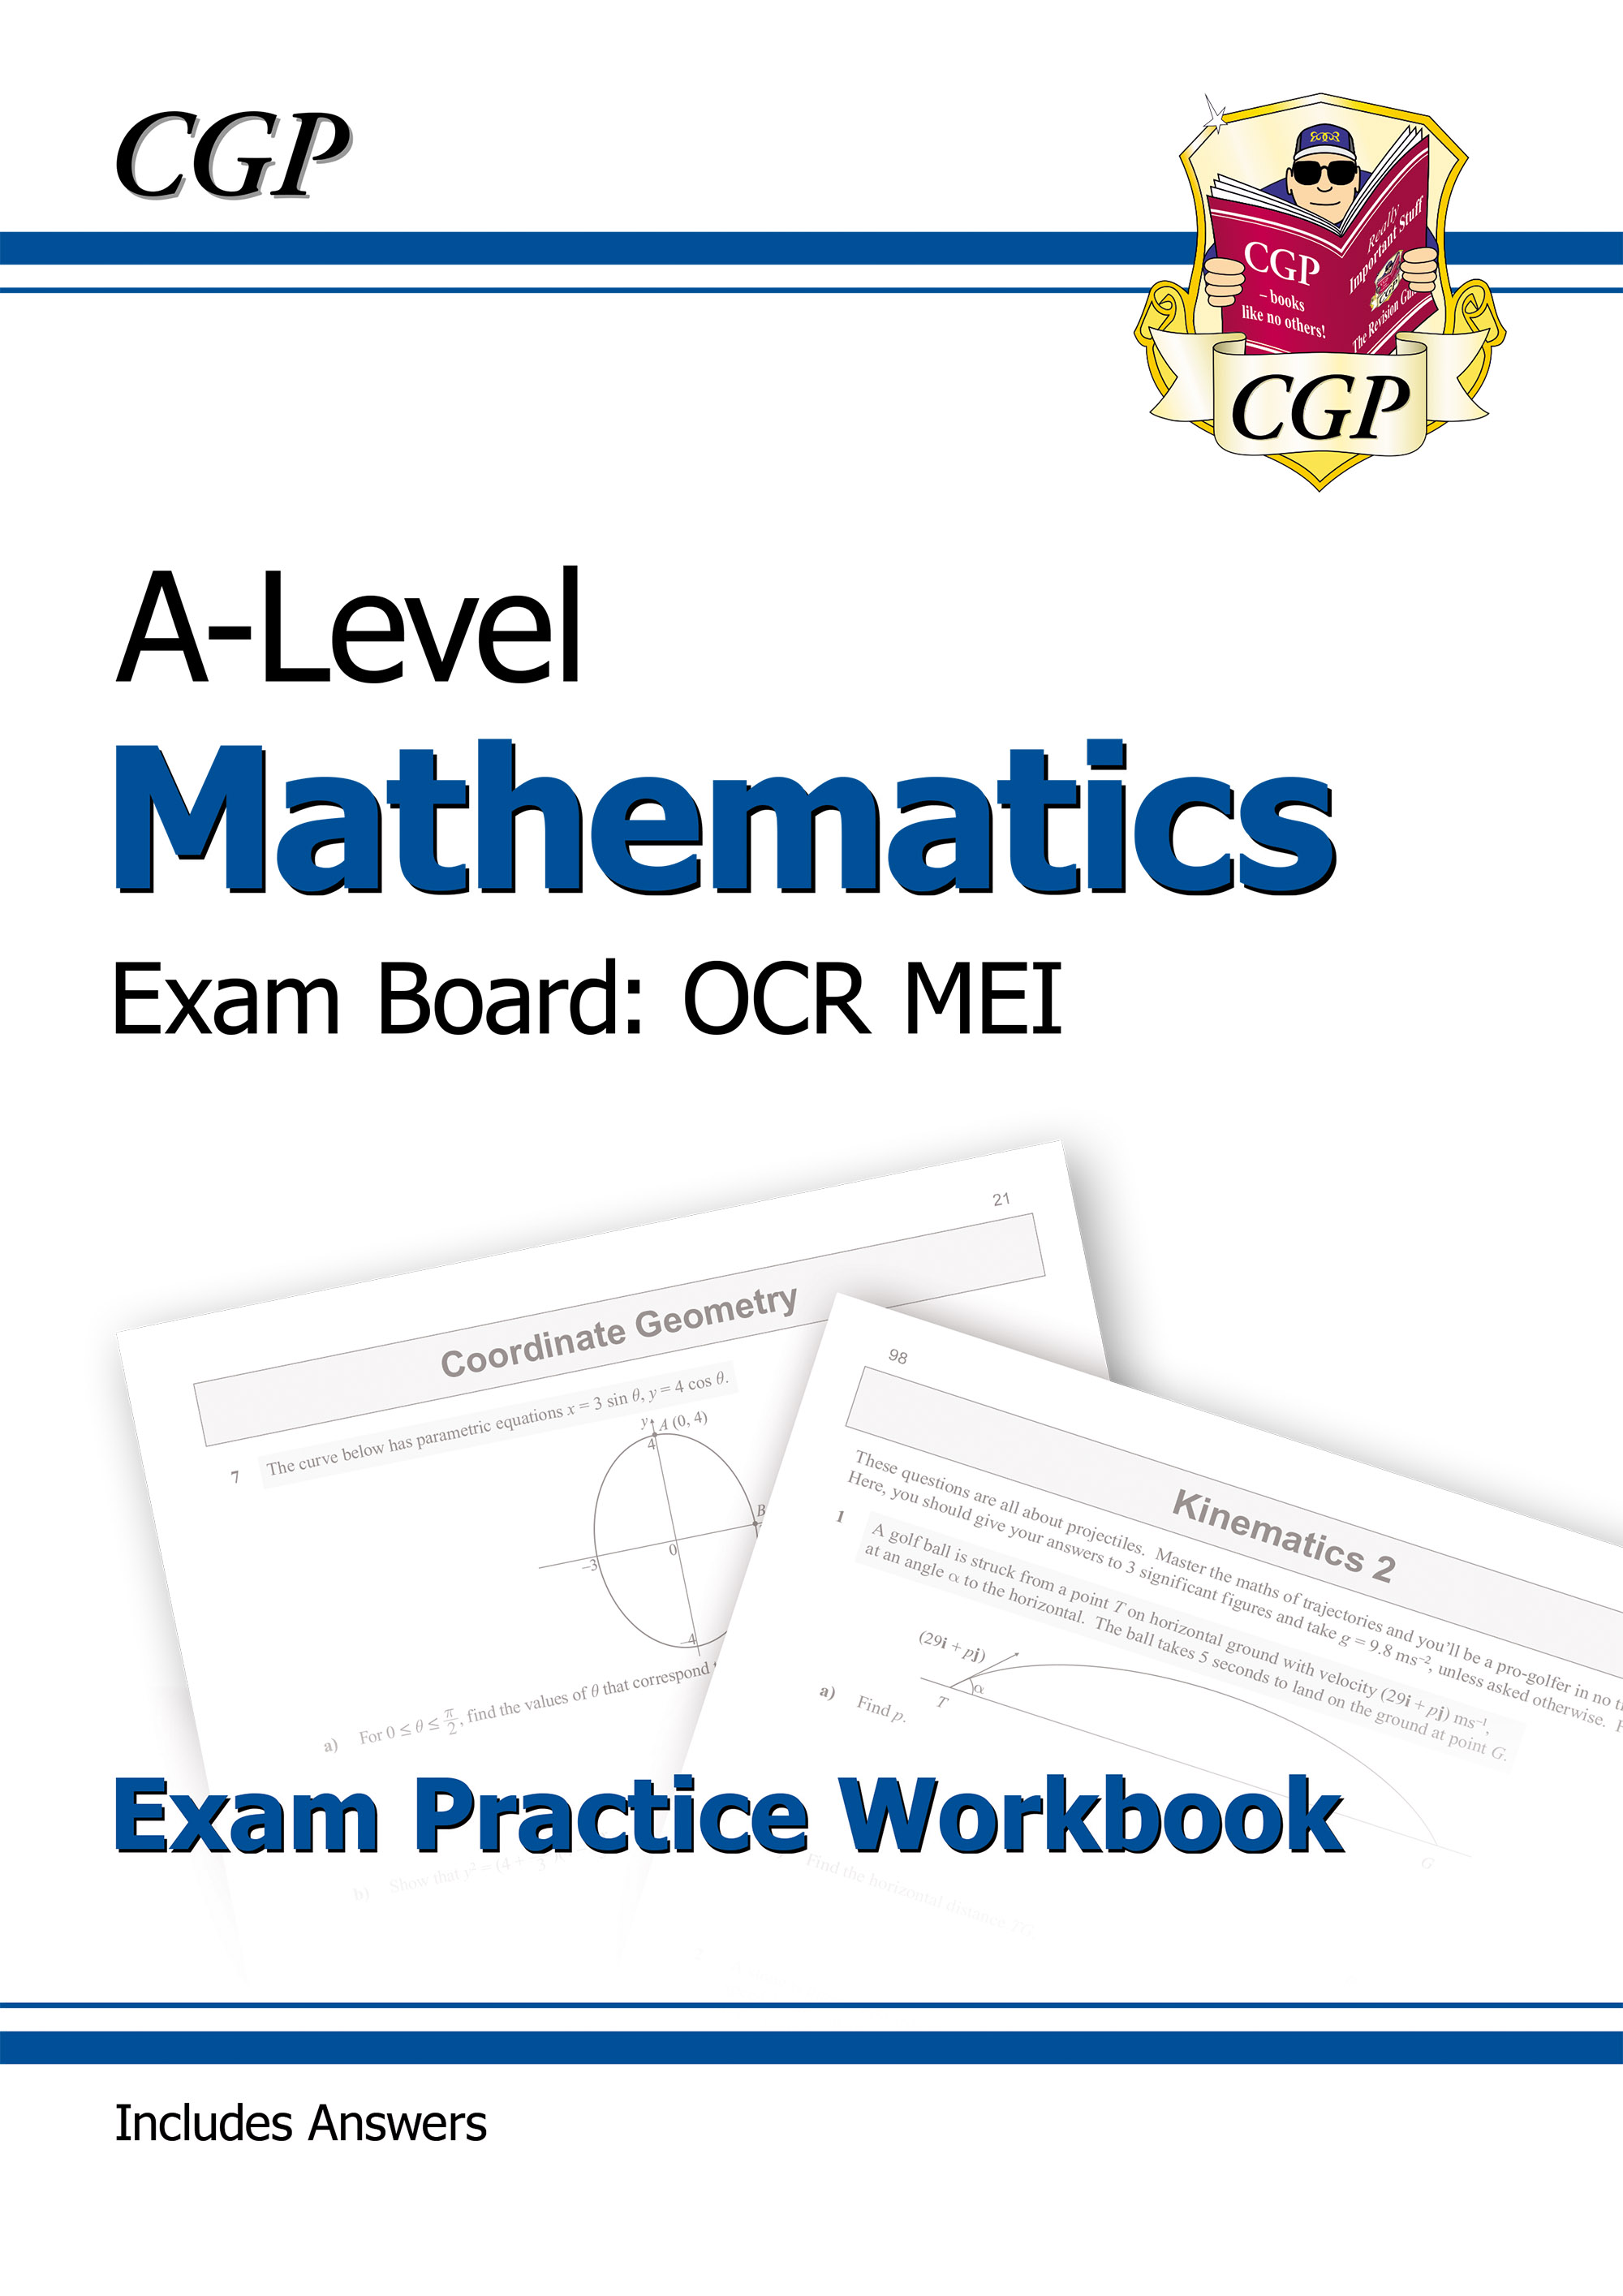 MRMQ71DK - New A-Level Maths for OCR MEI: Year 1 & 2 Exam Practice Workbook